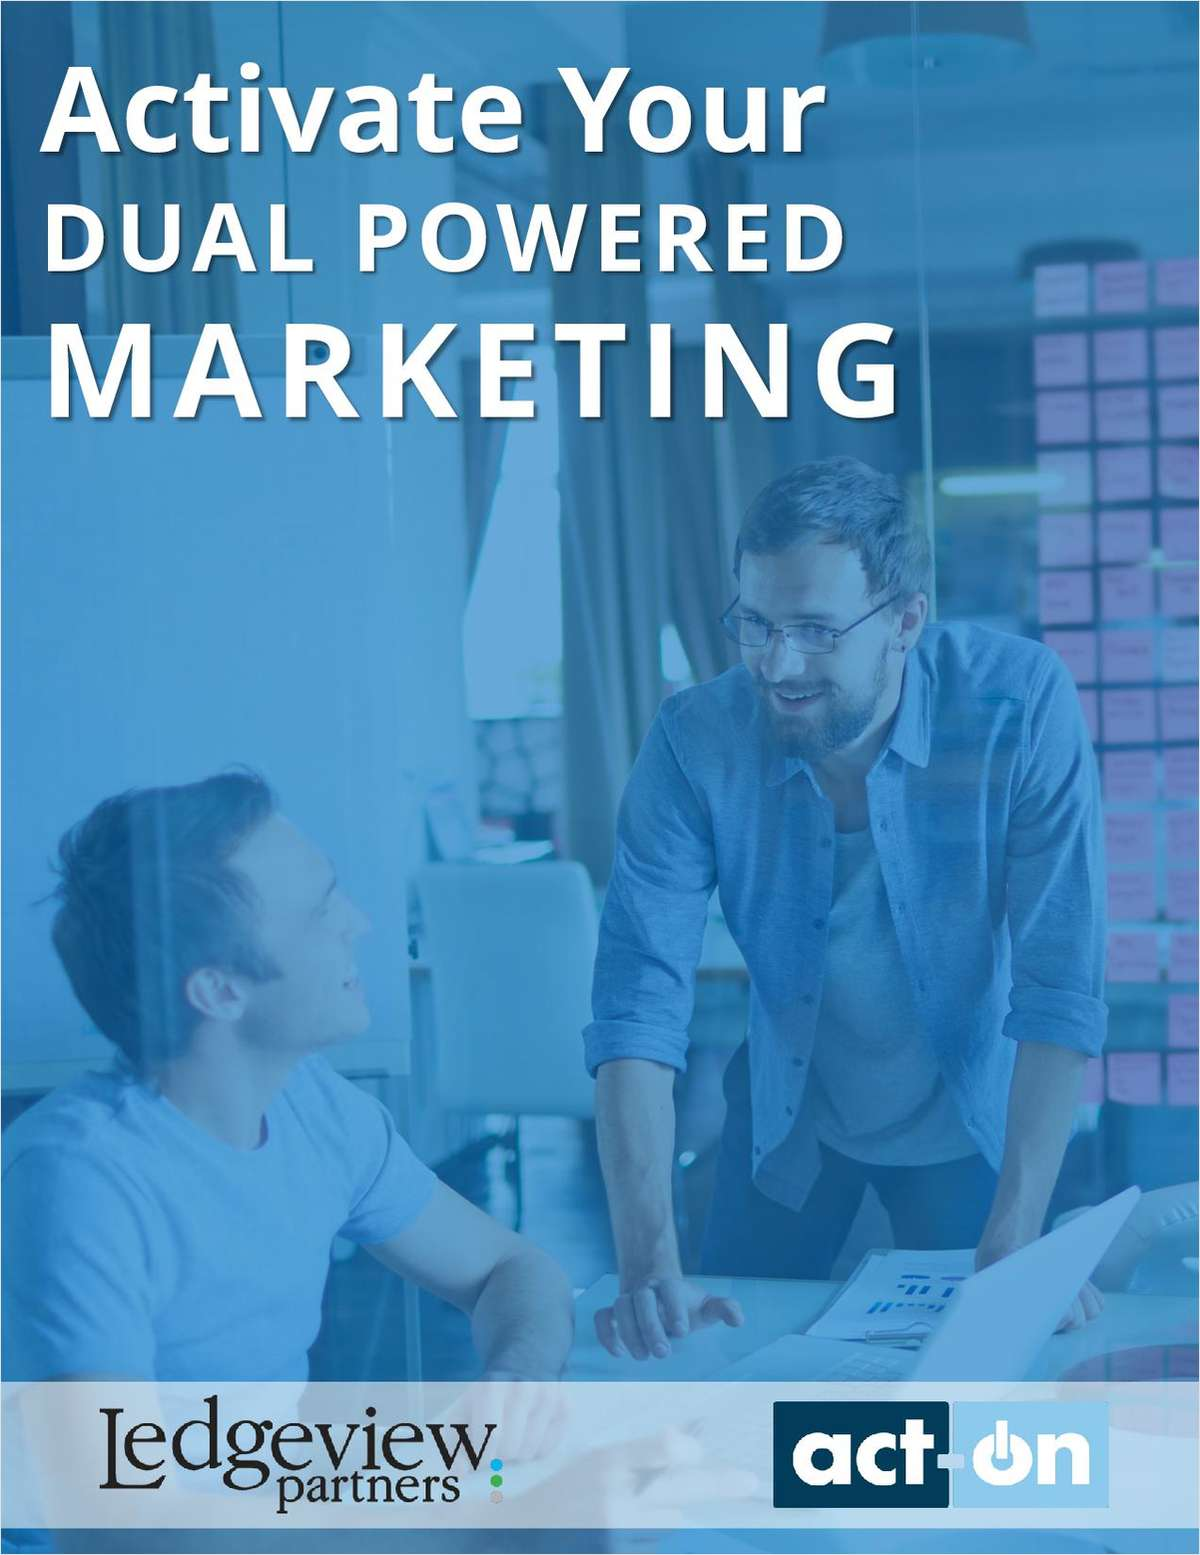 Activate Your Dual Powered Marketing